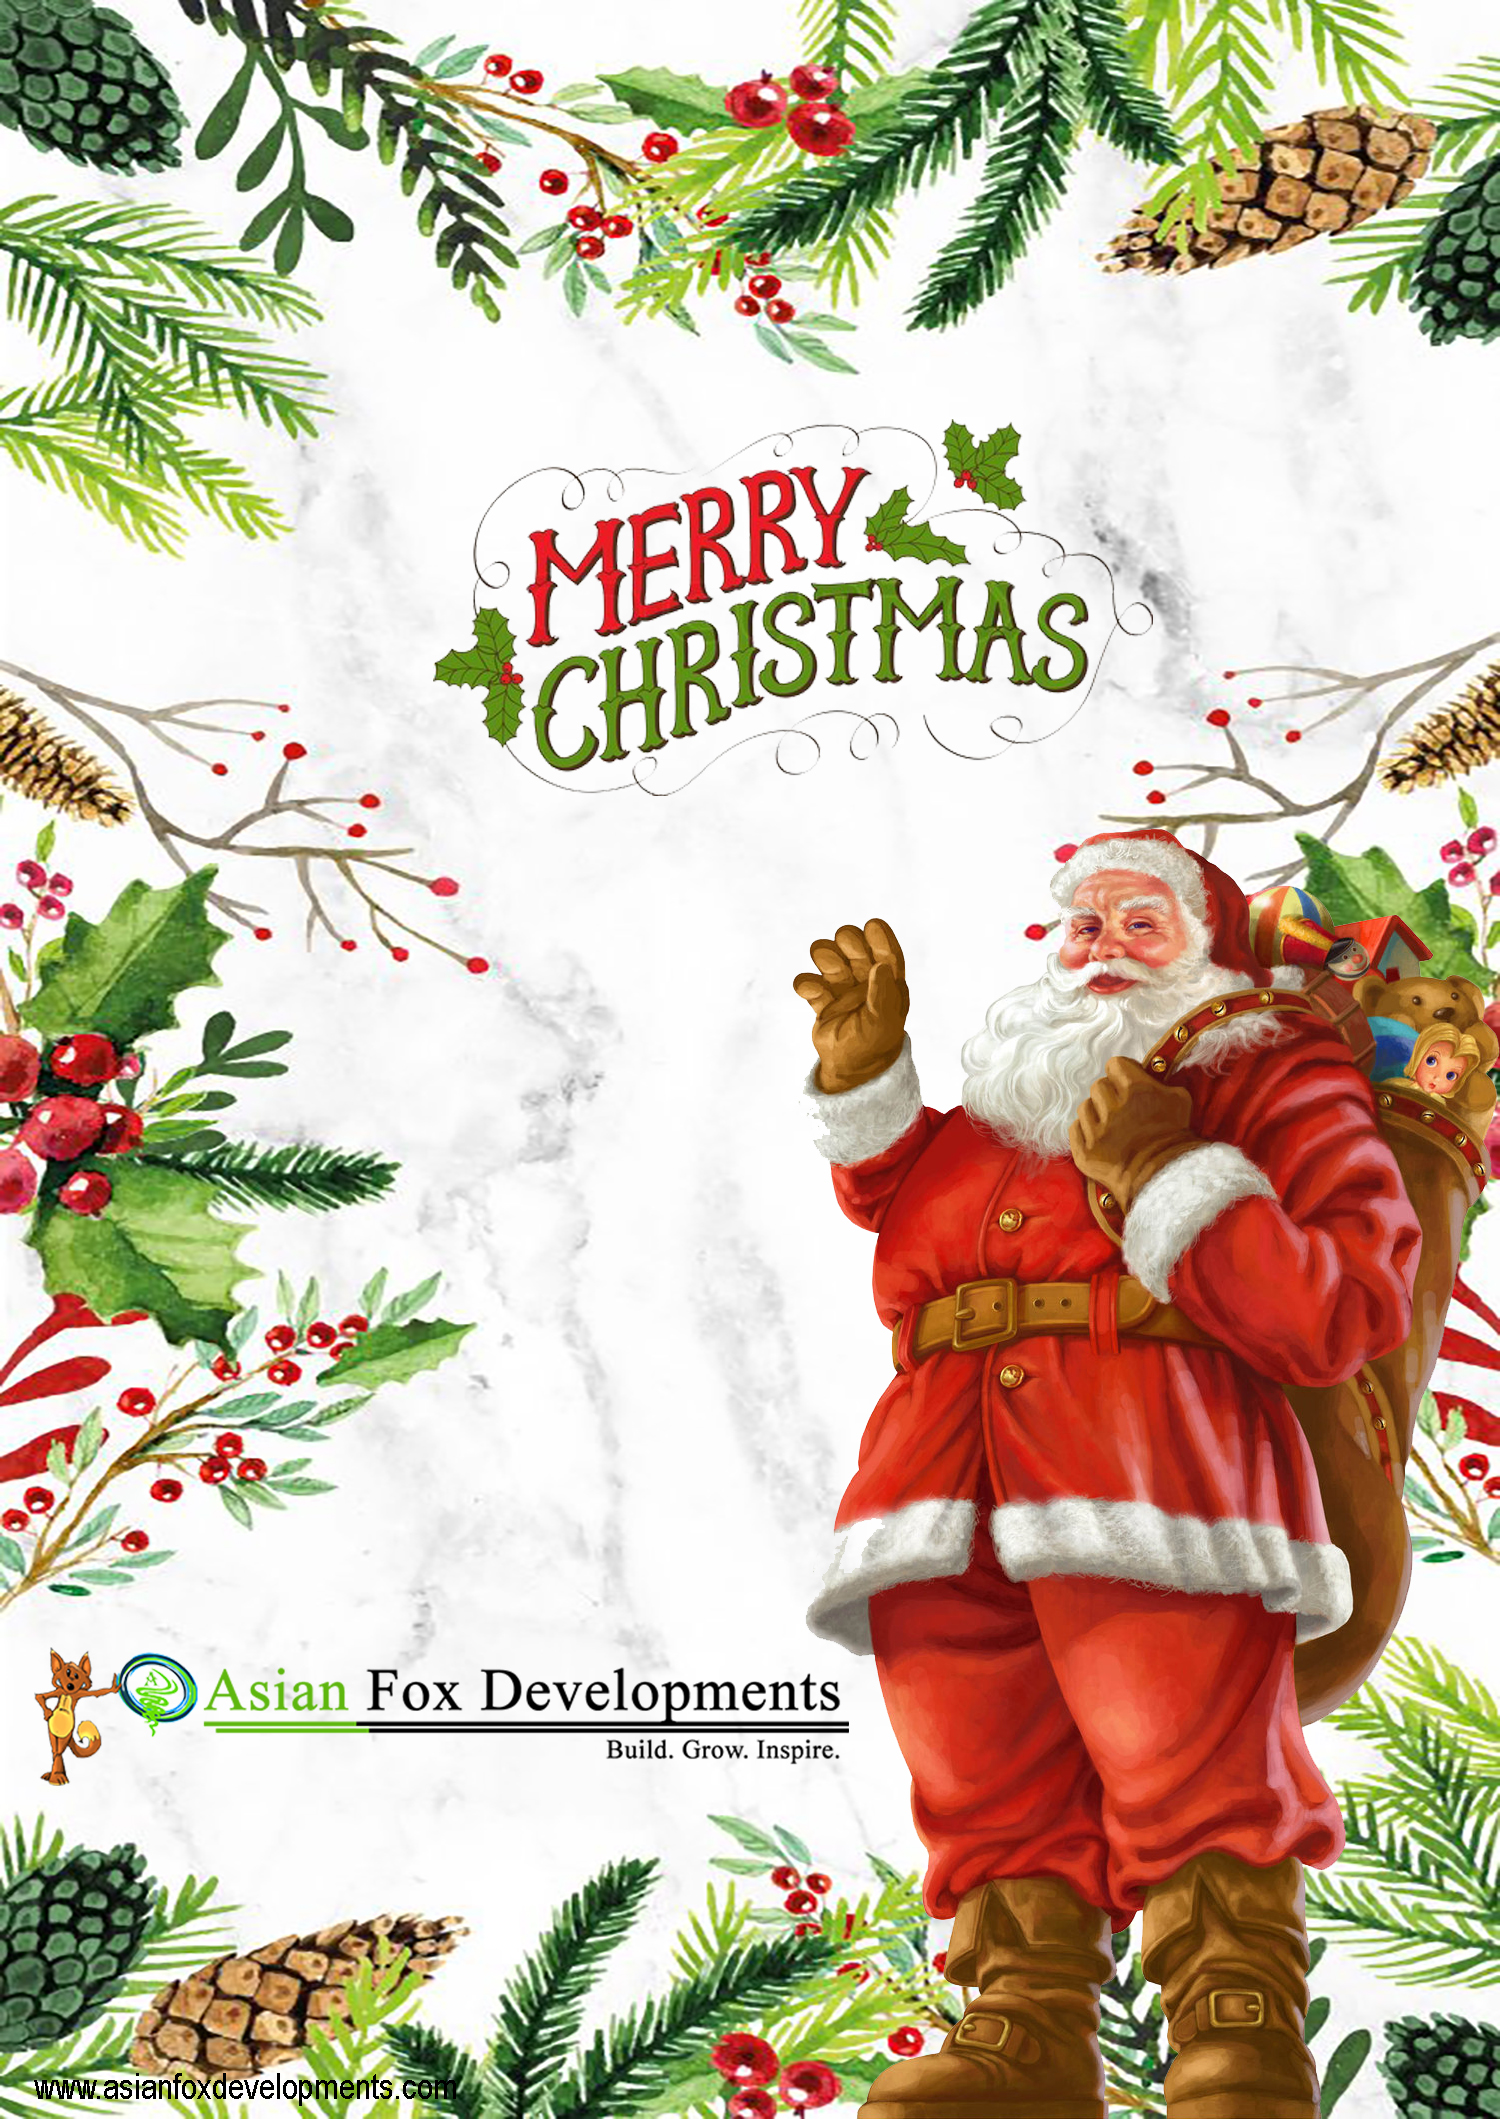 Asian Fox Developments - Merry Christmas 2017